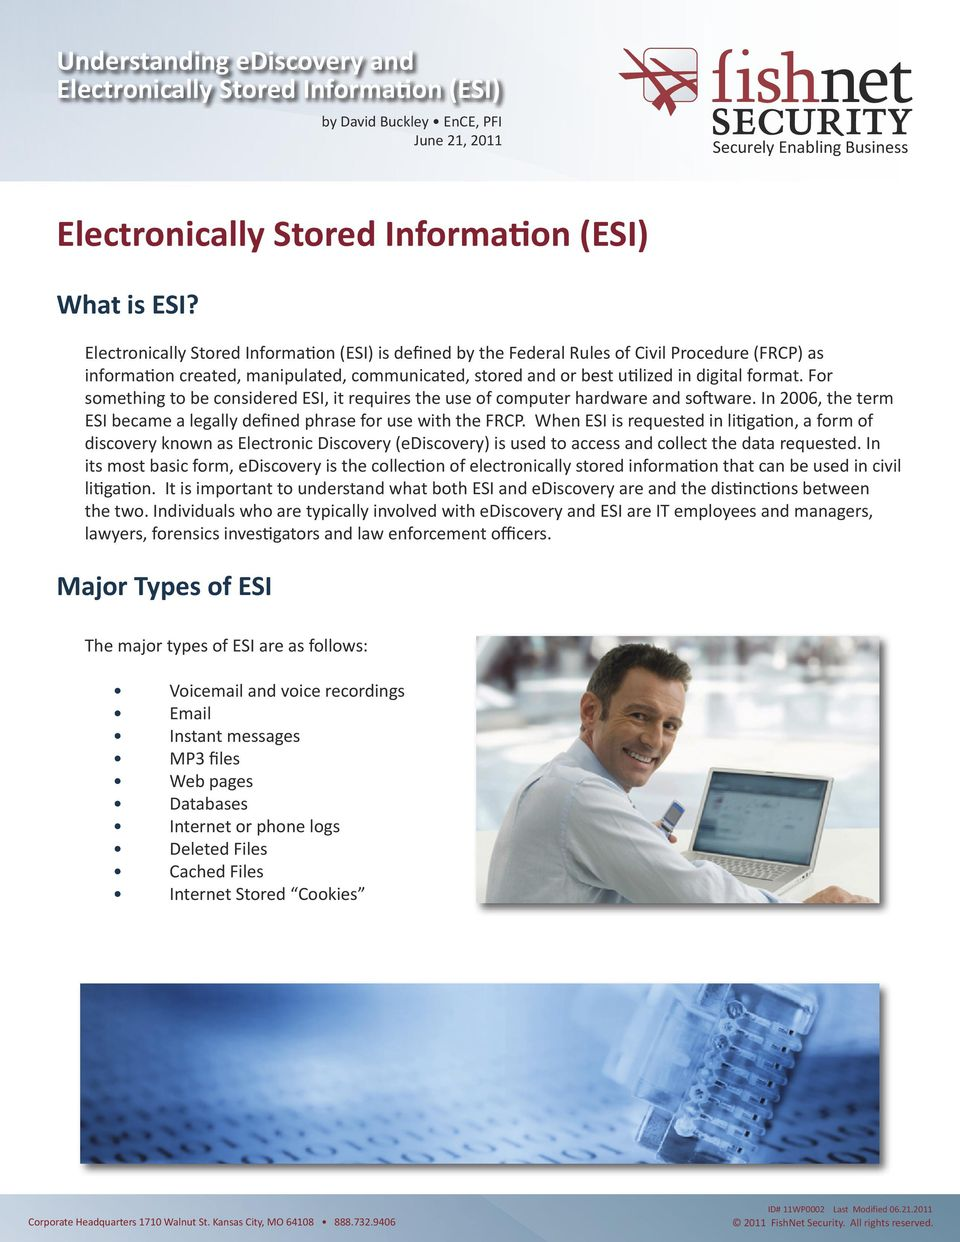 When ESI is requested in litigation, a form of discovery known as Electronic Discovery (ediscovery) is used to access and collect the data requested.